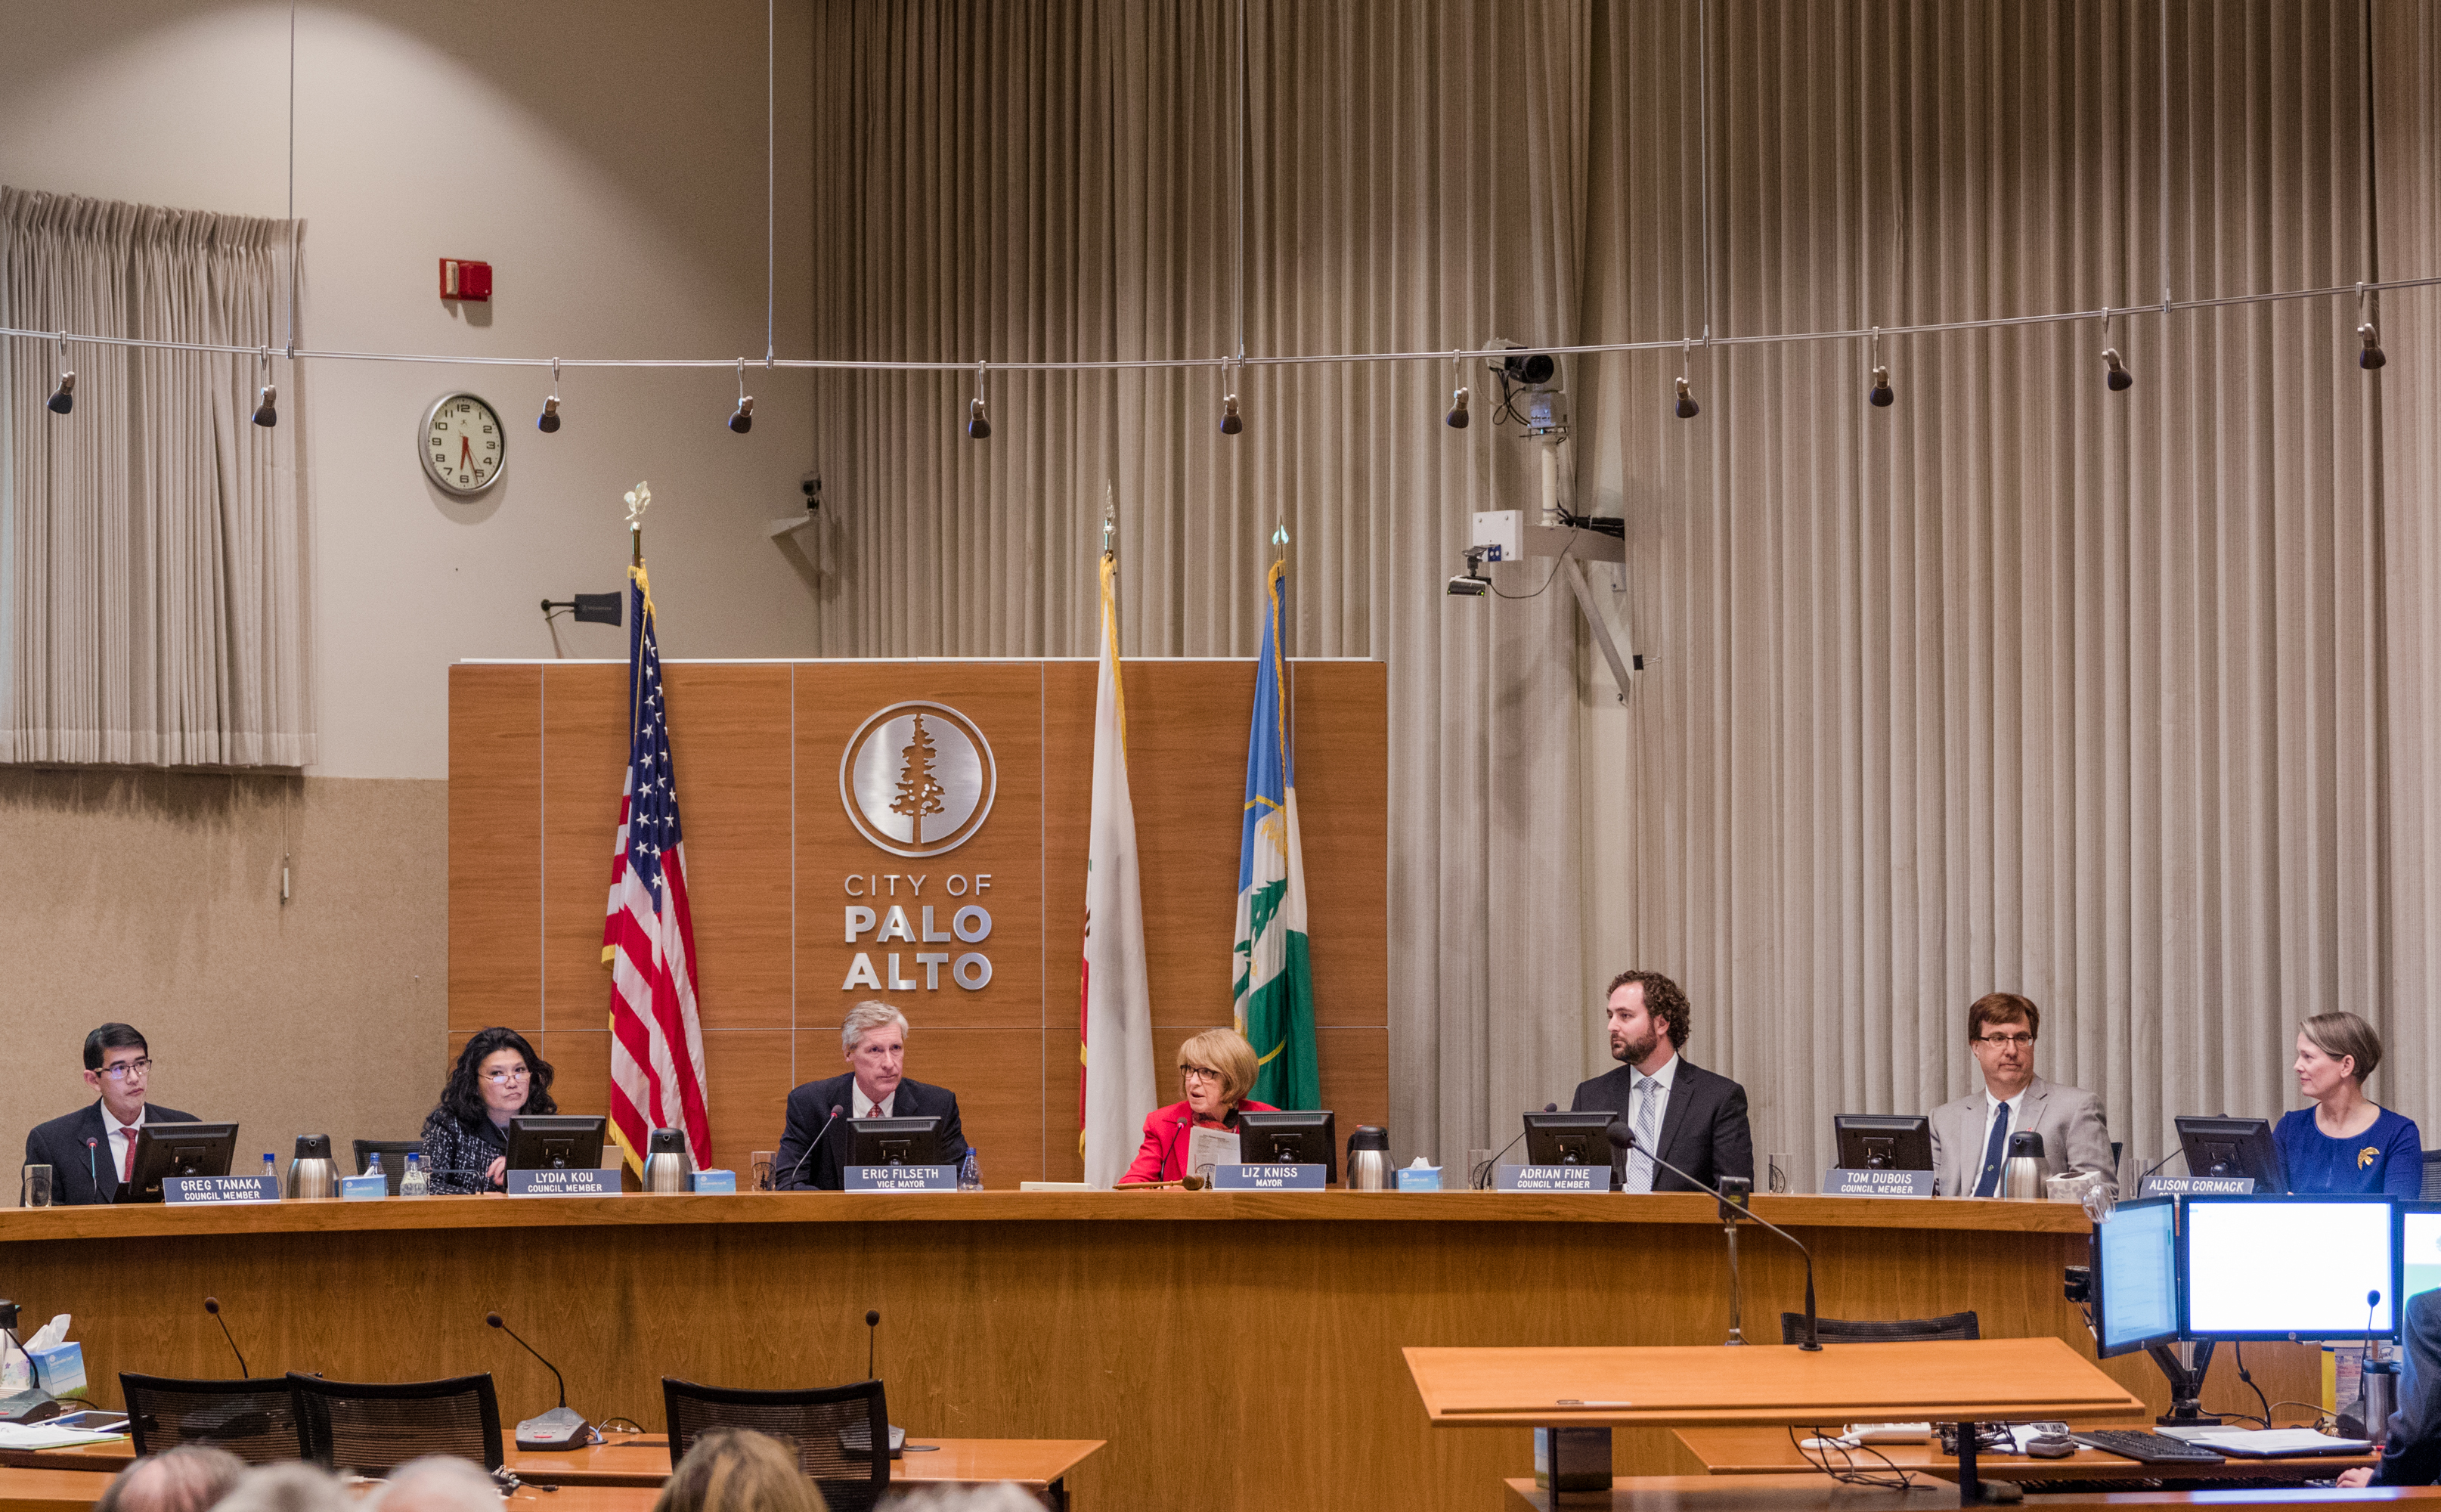 The Palo Alto City Council was redeuced from nine to seven members at the beginning of 2019. File photo by Veronica Weber.